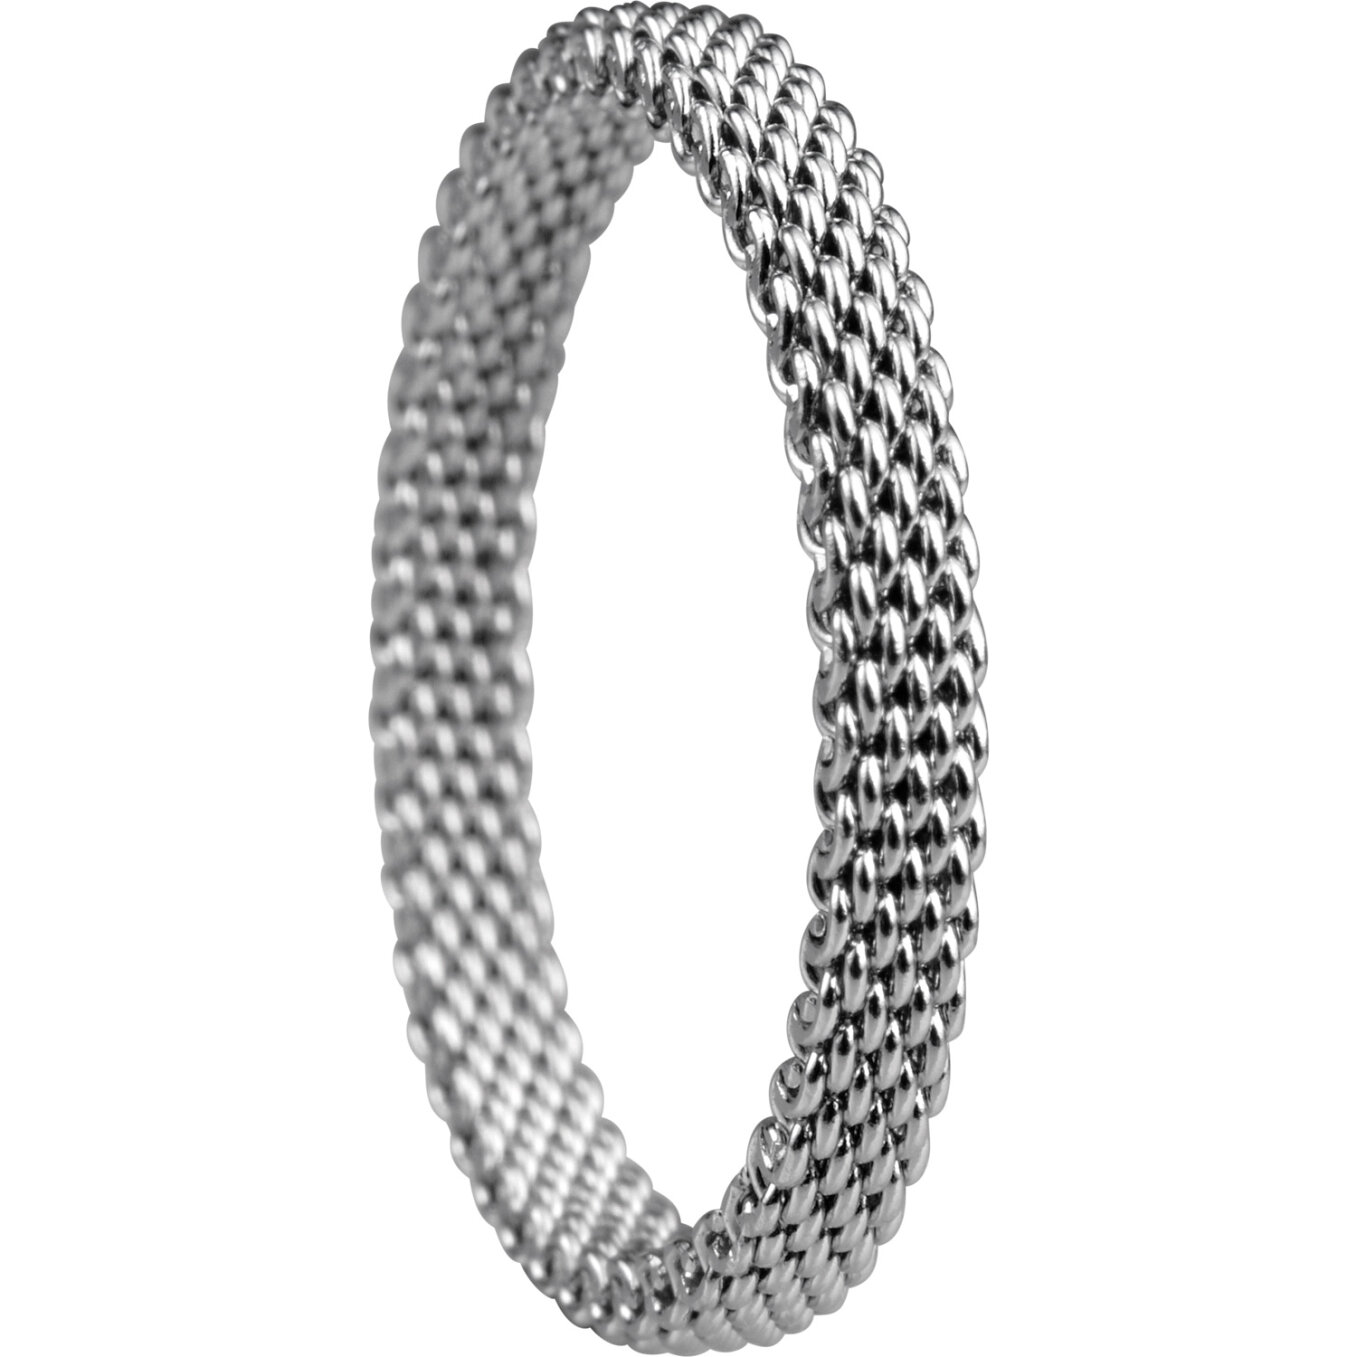 Bering Innenring 551-10-111 Milanaise silber